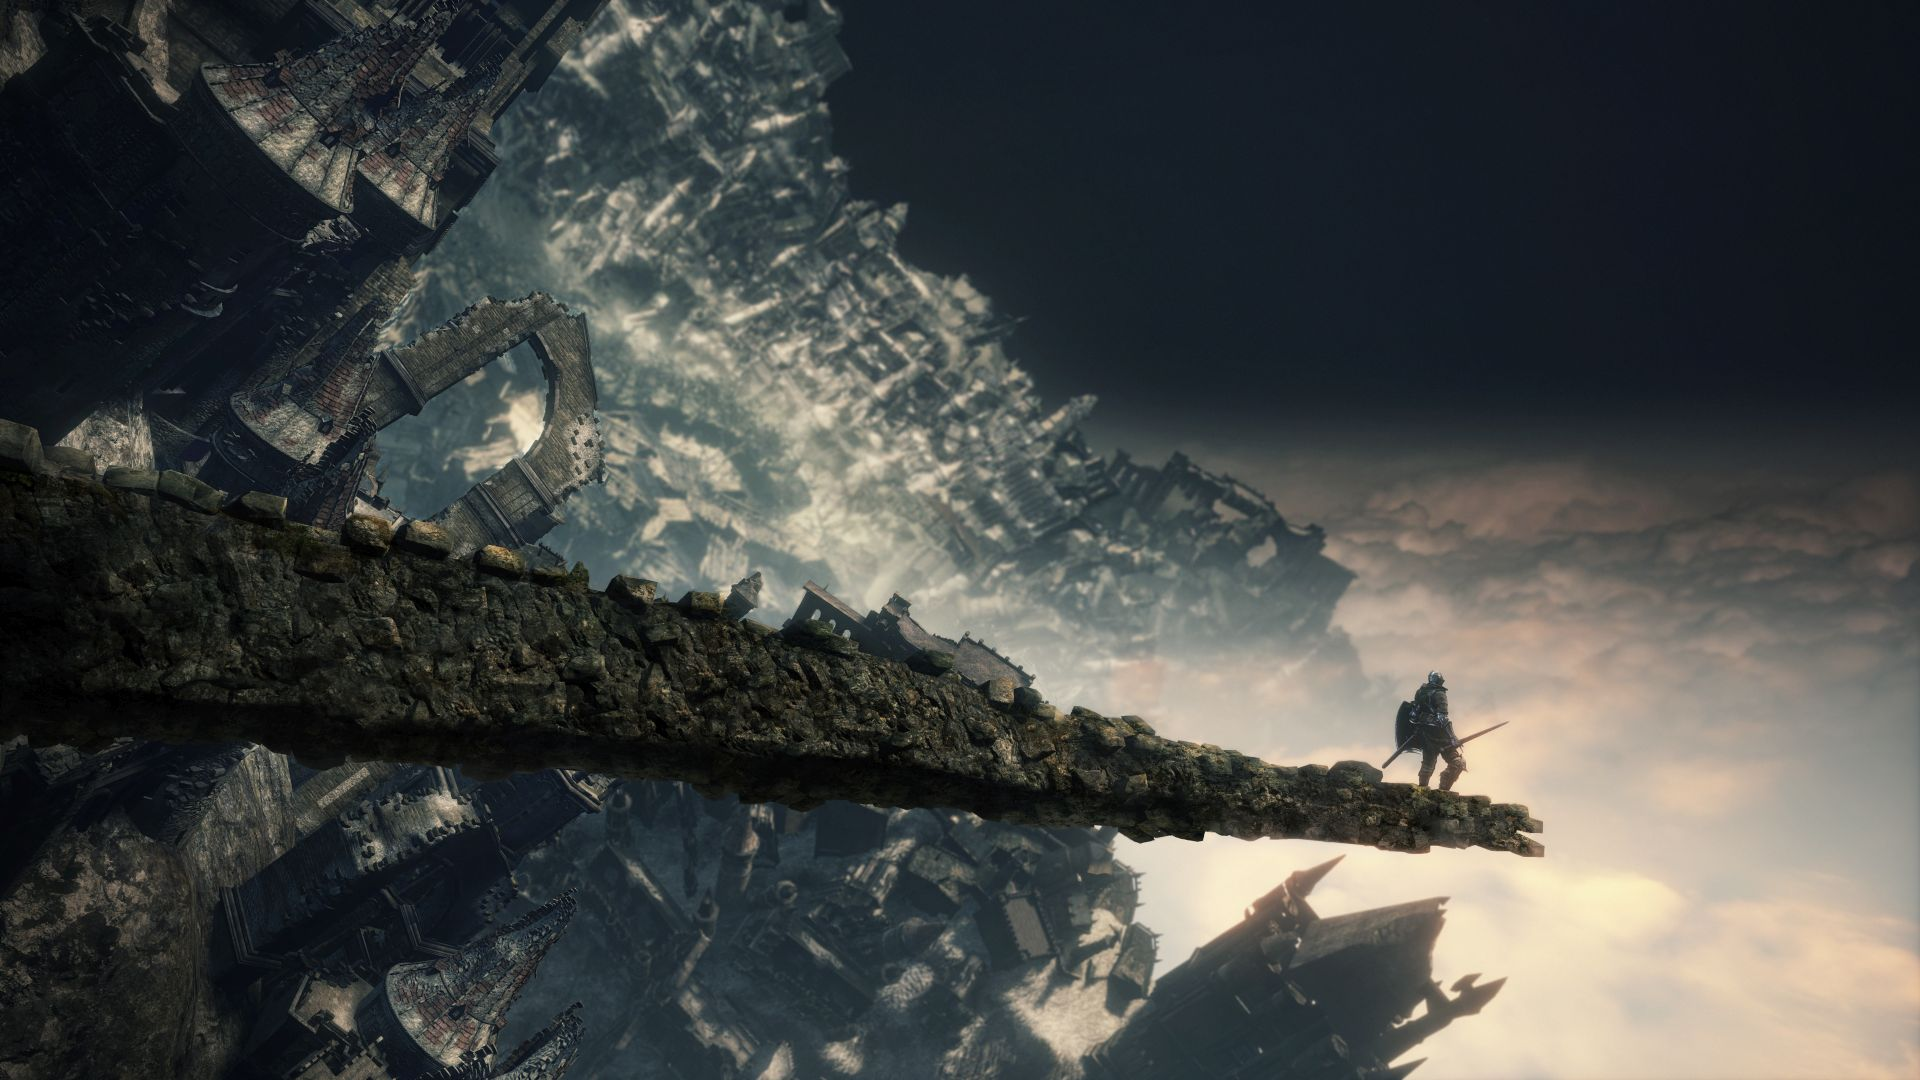 Dark Souls III Director's Next Game Not Necessarily Similar to Dark Souls